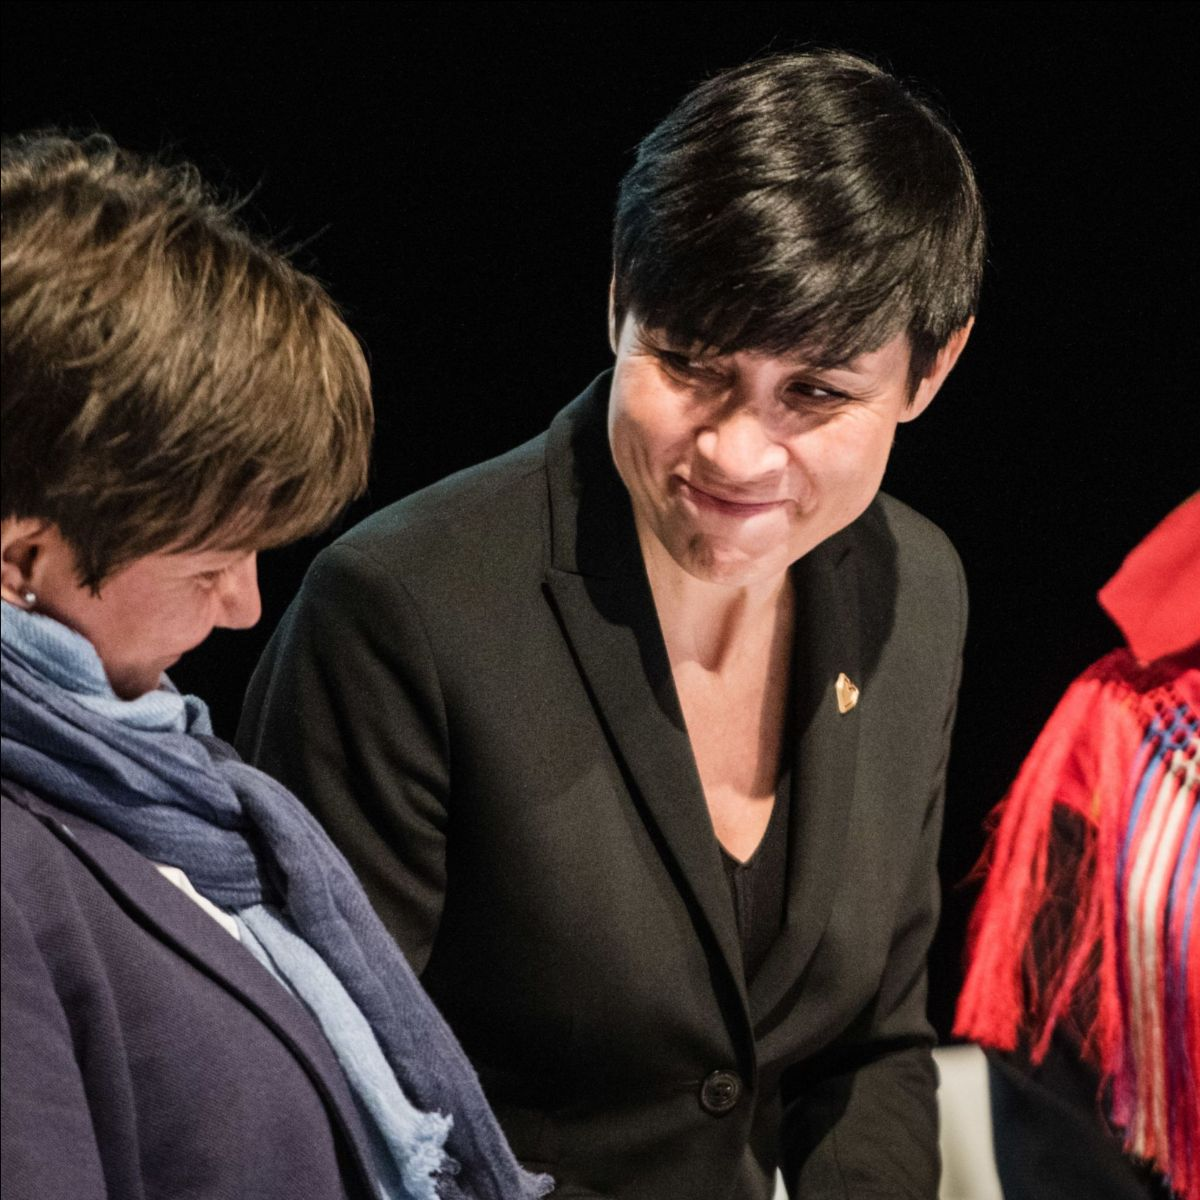 Norway's Foreign Minister Søreide